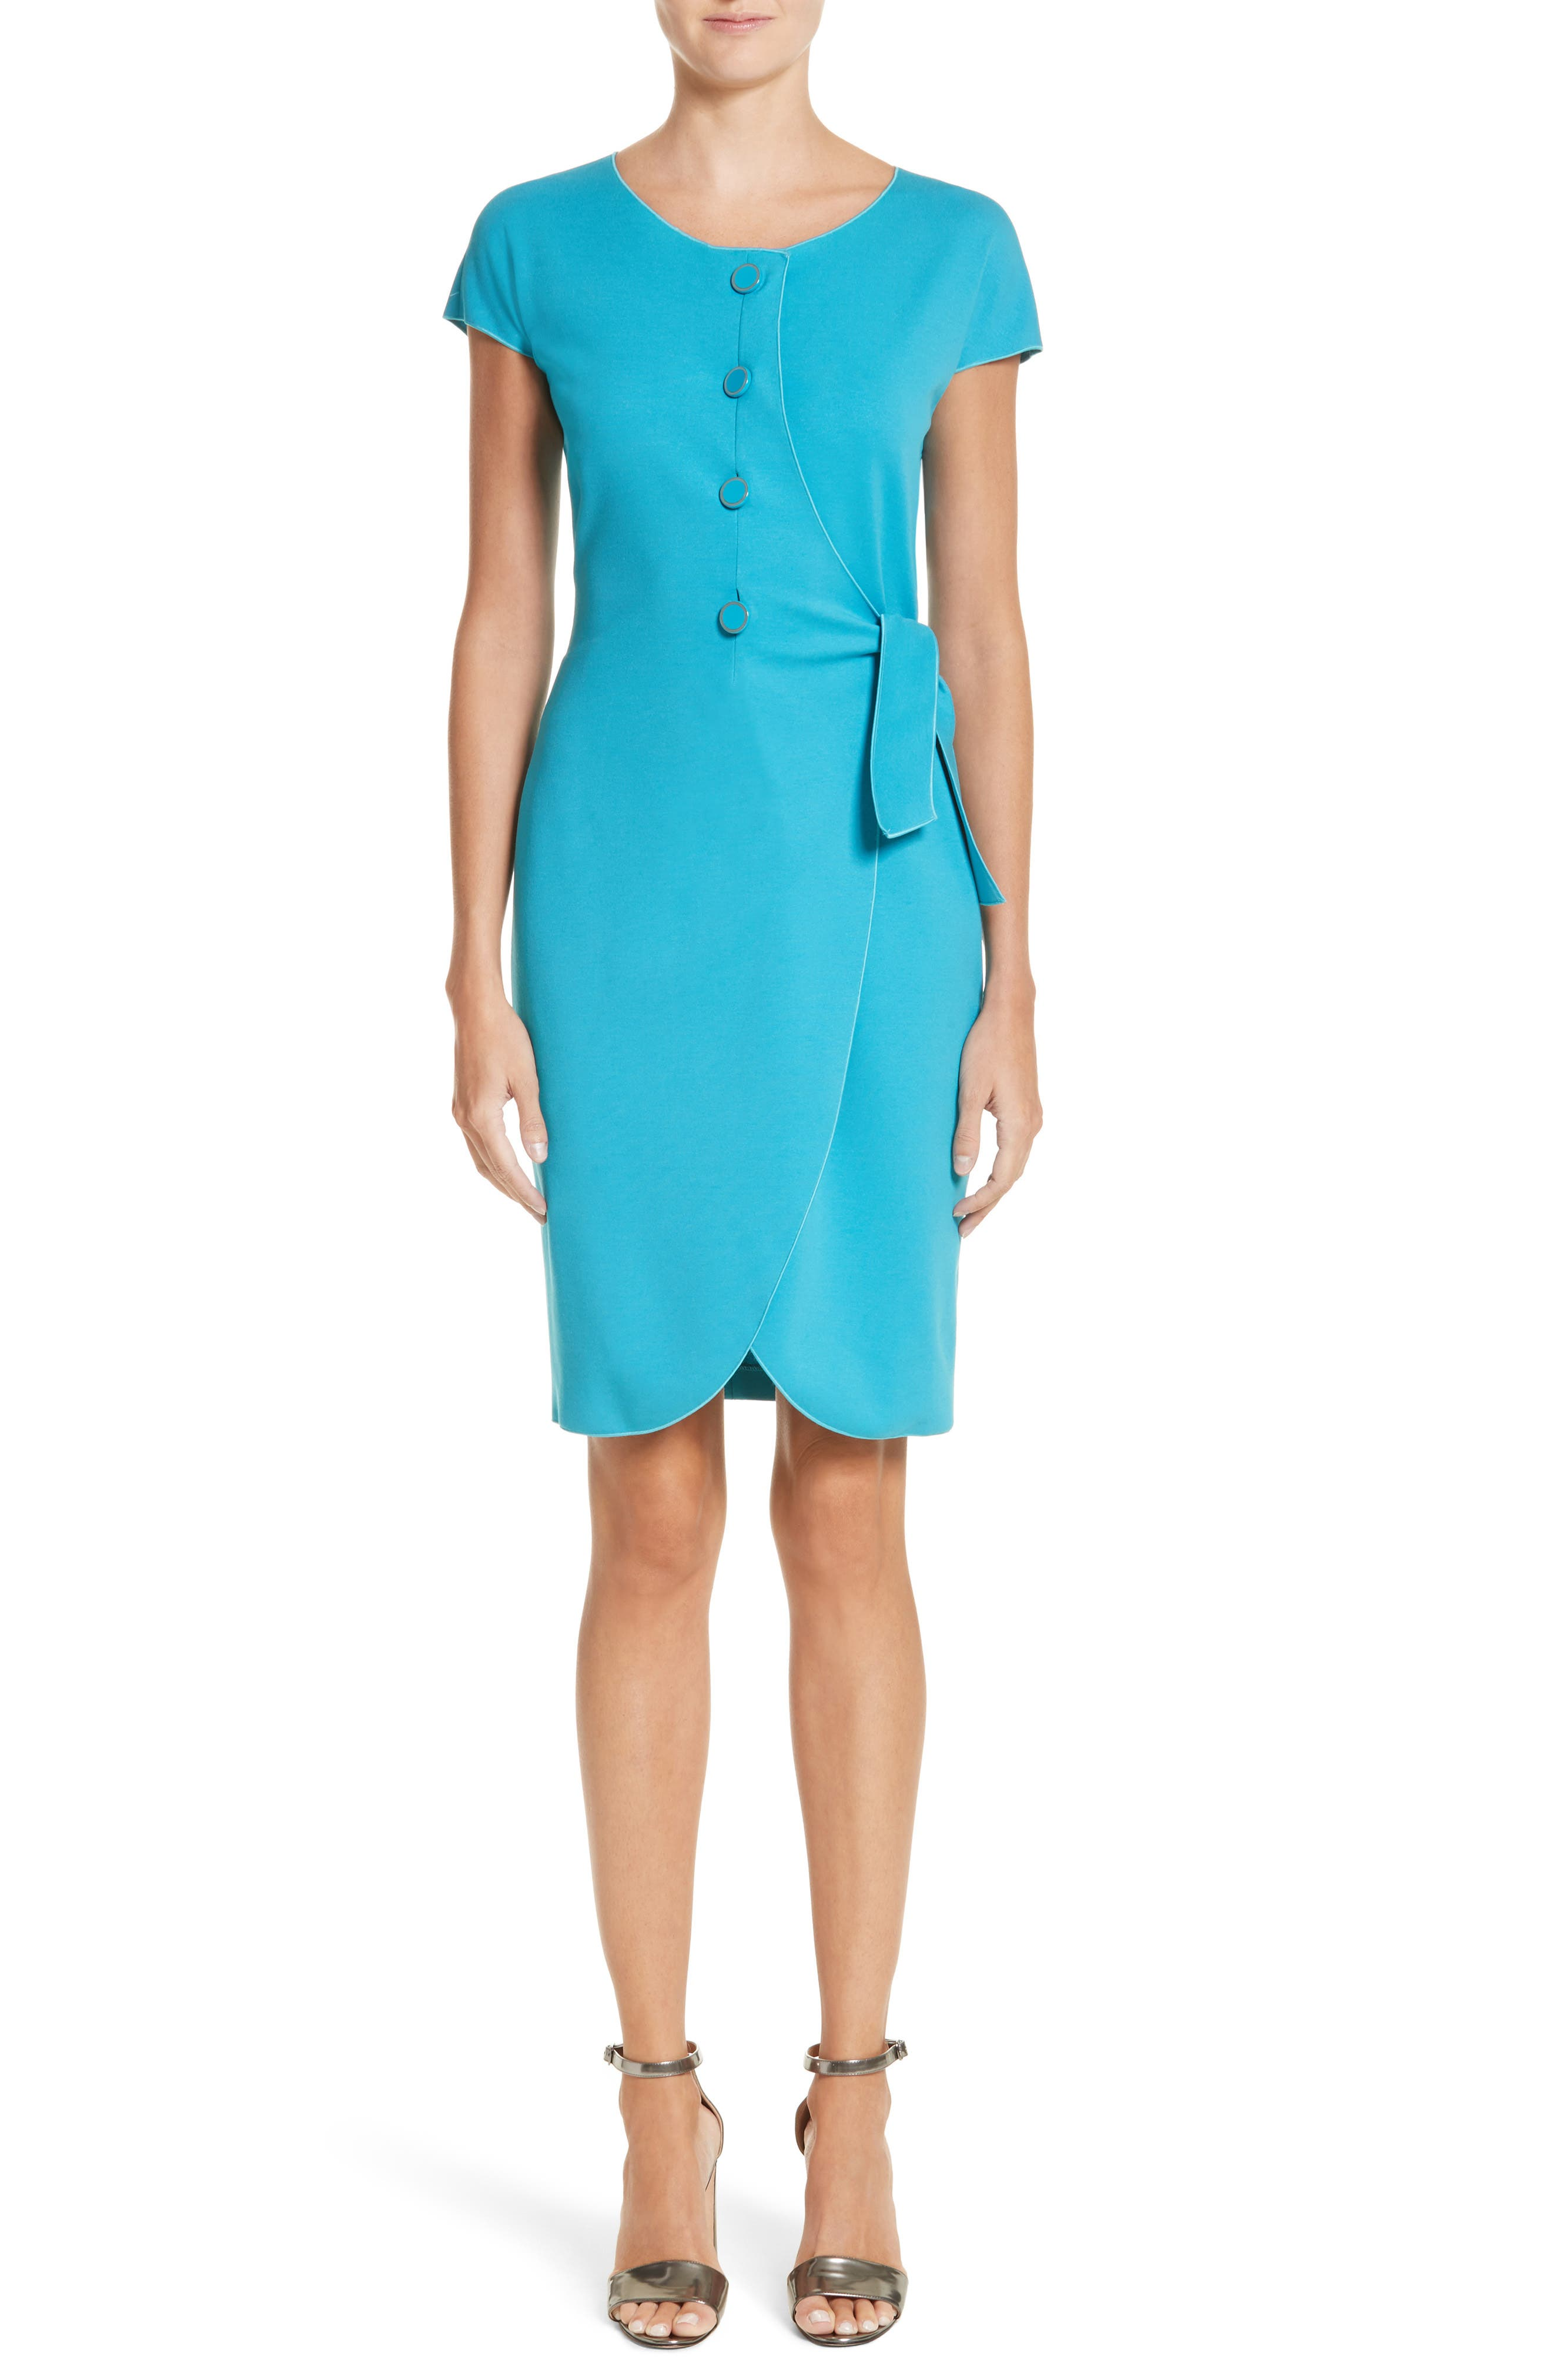 Knotted Wrap Skirt Dress,                             Main thumbnail 1, color,                             Solid Turquoise/ Aqua